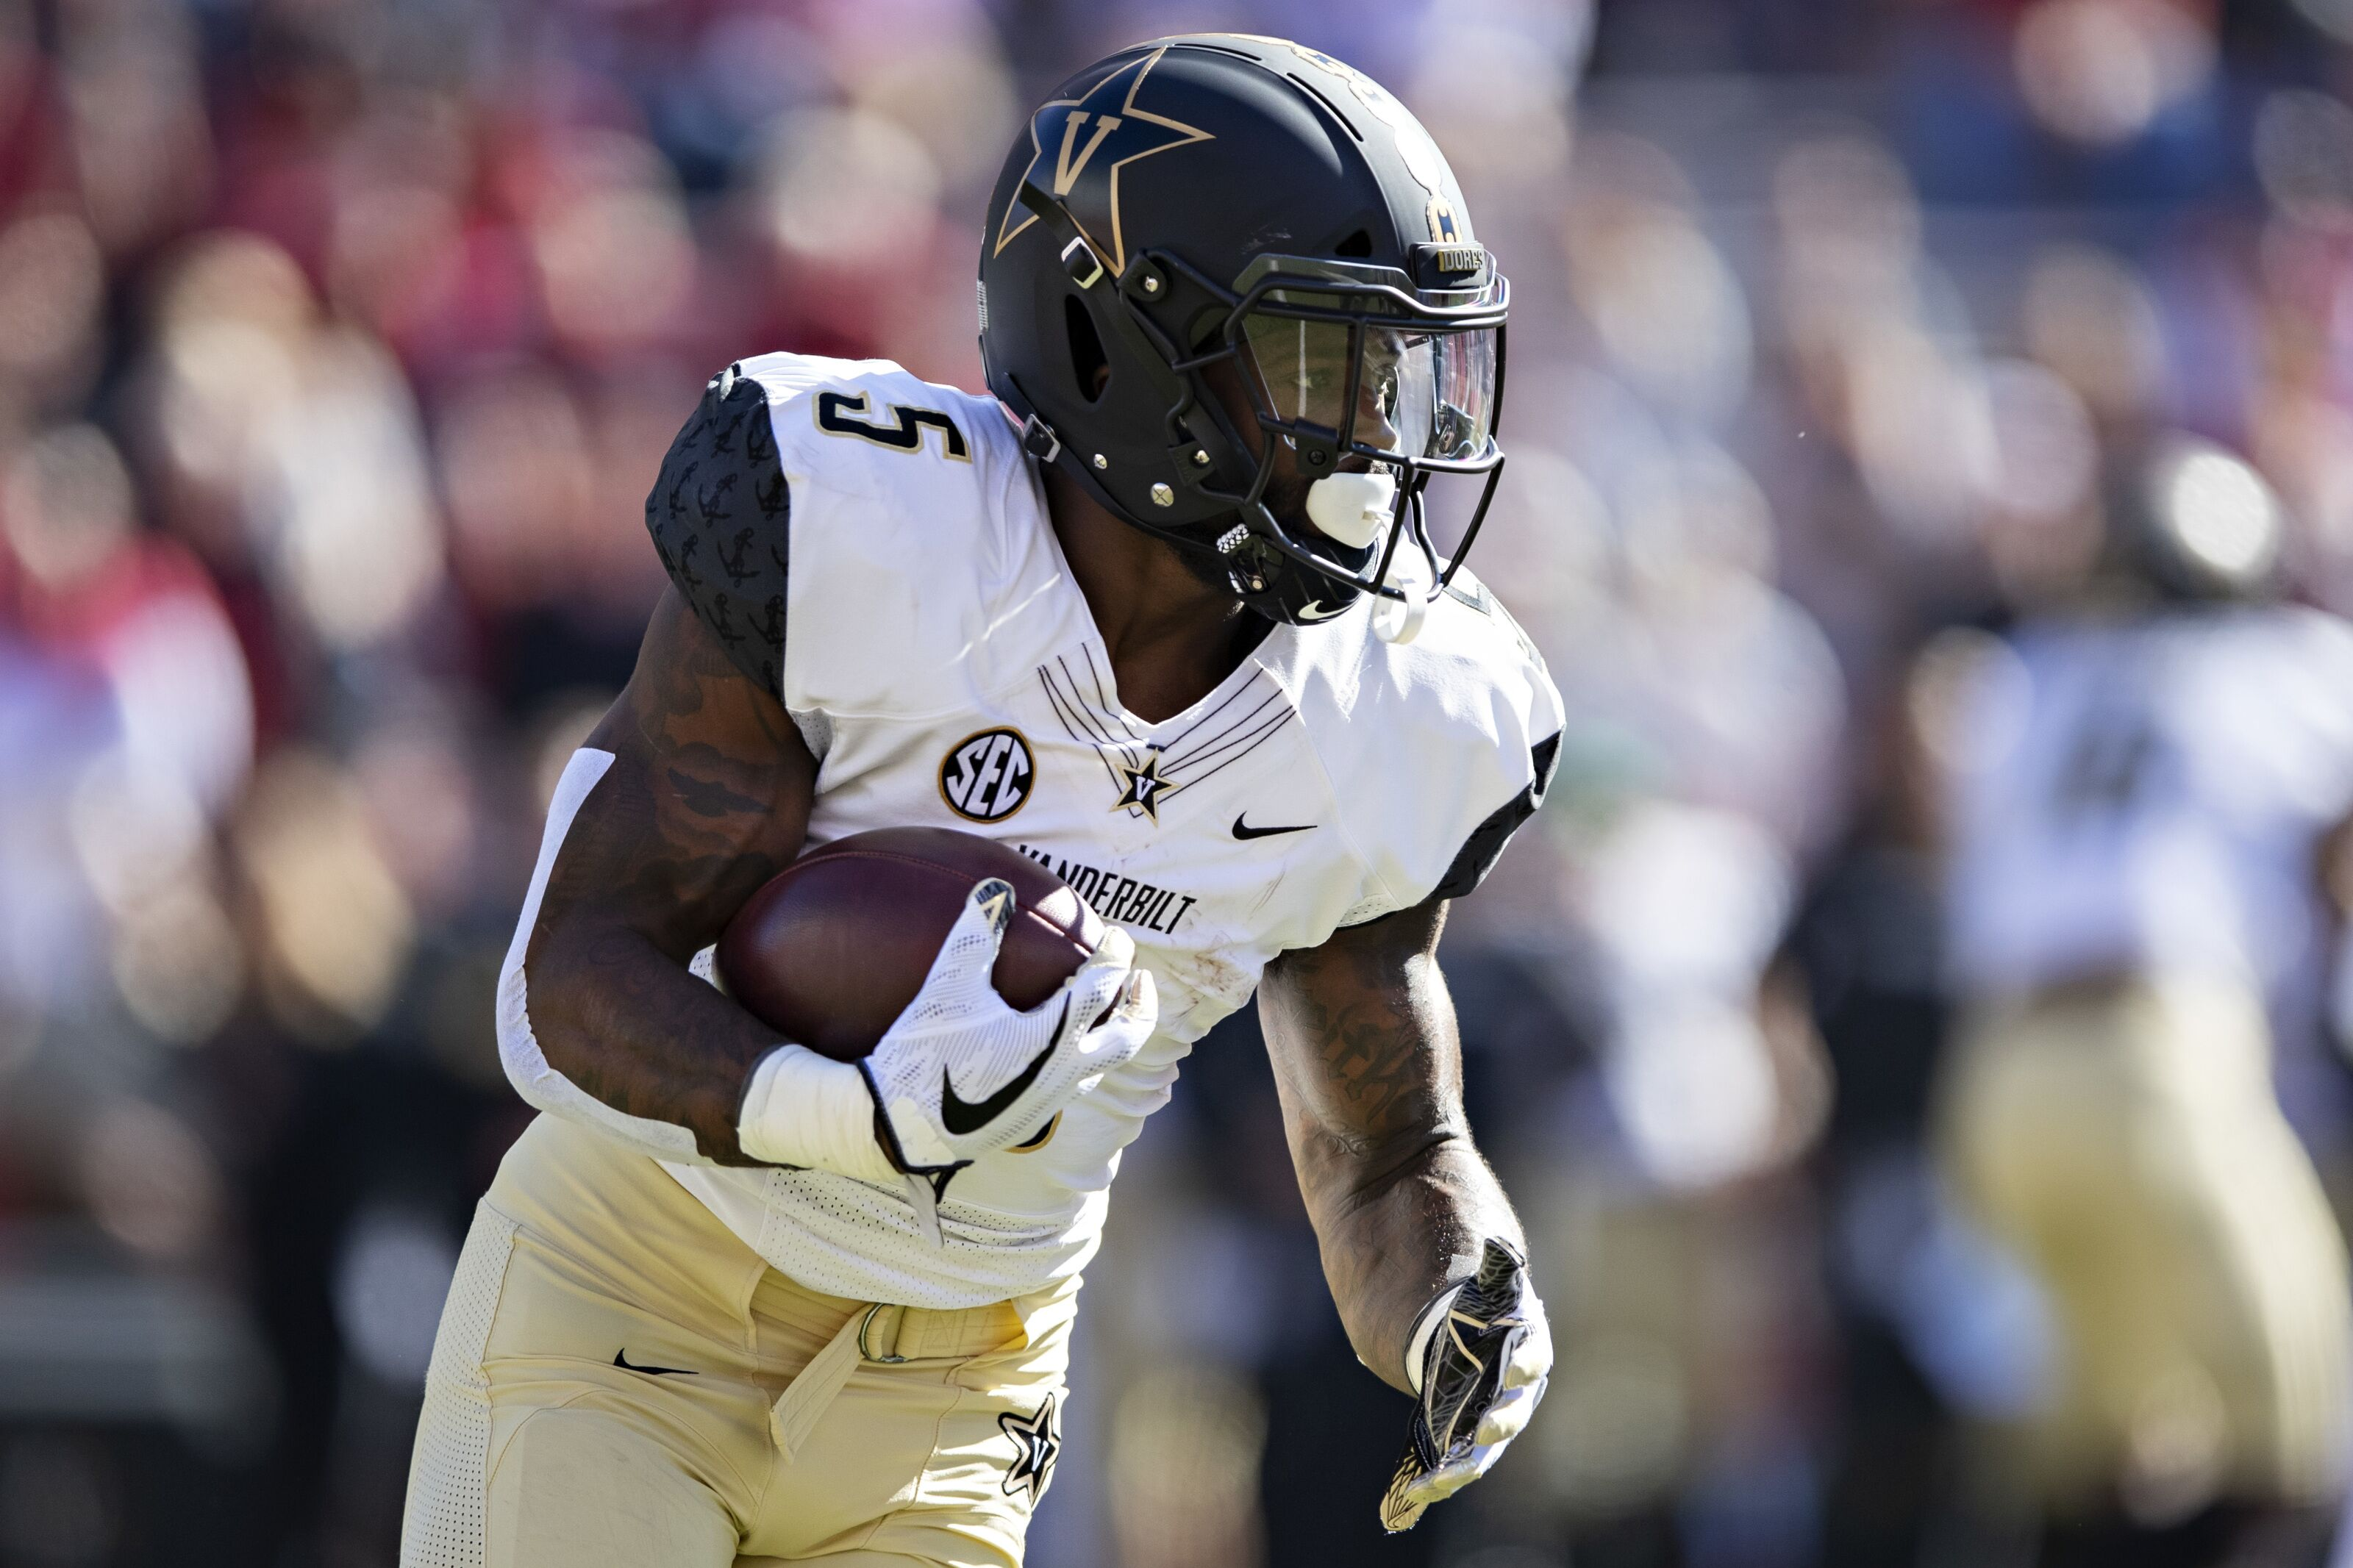 College Football Preview: Top 5 Fantasy Running Backs for 2019